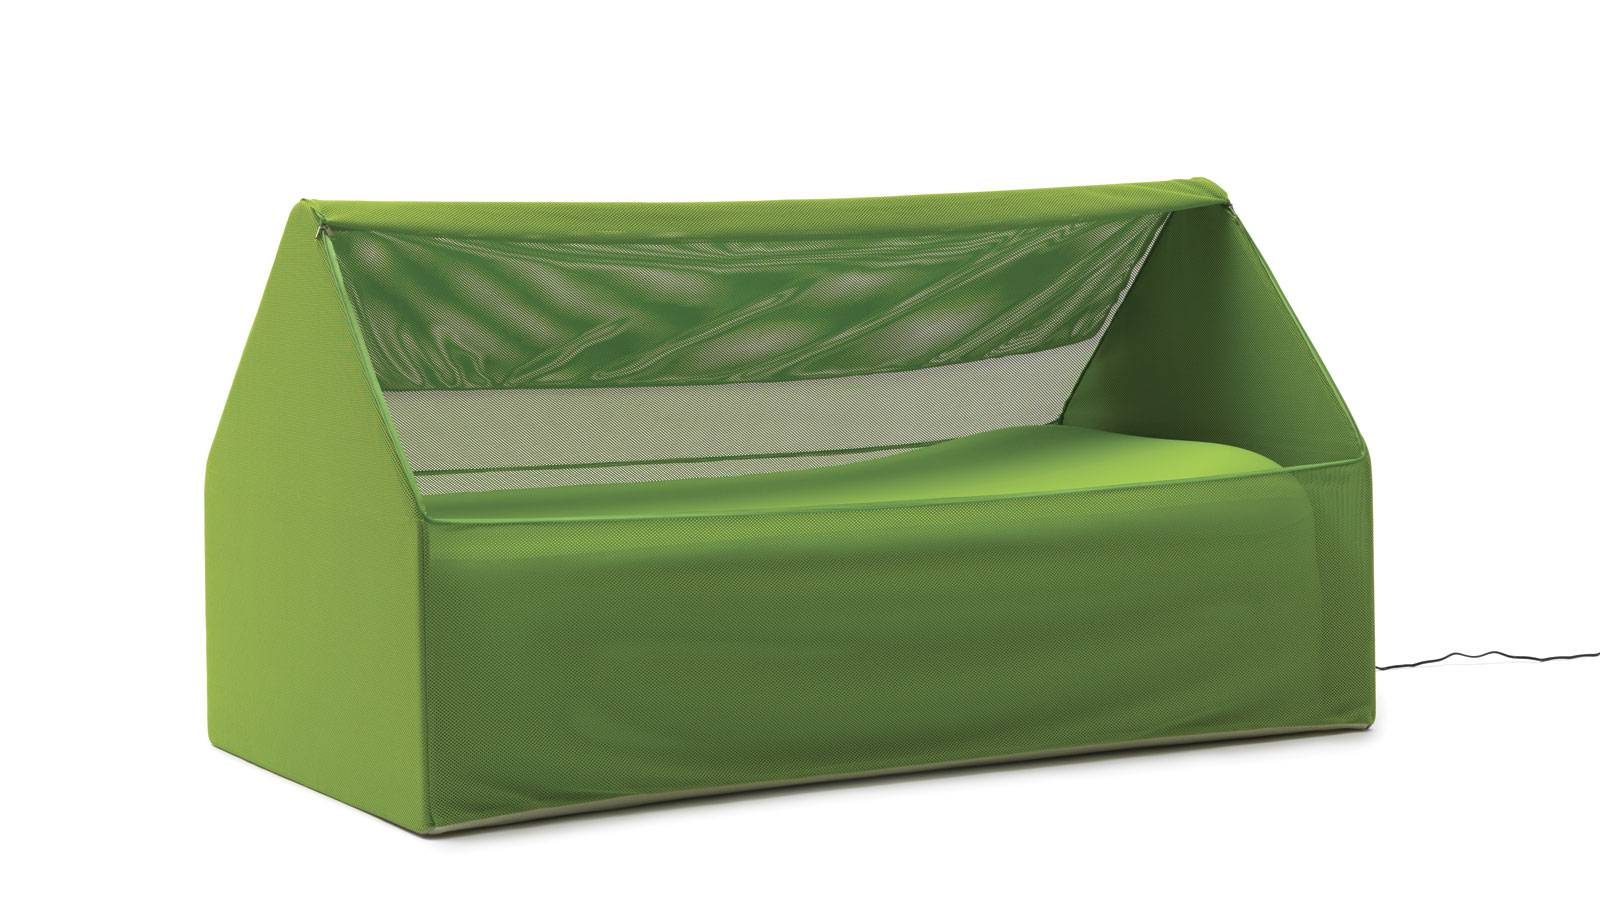 contemporary made in Italy furniture by Denis Santachiara for Campeggi